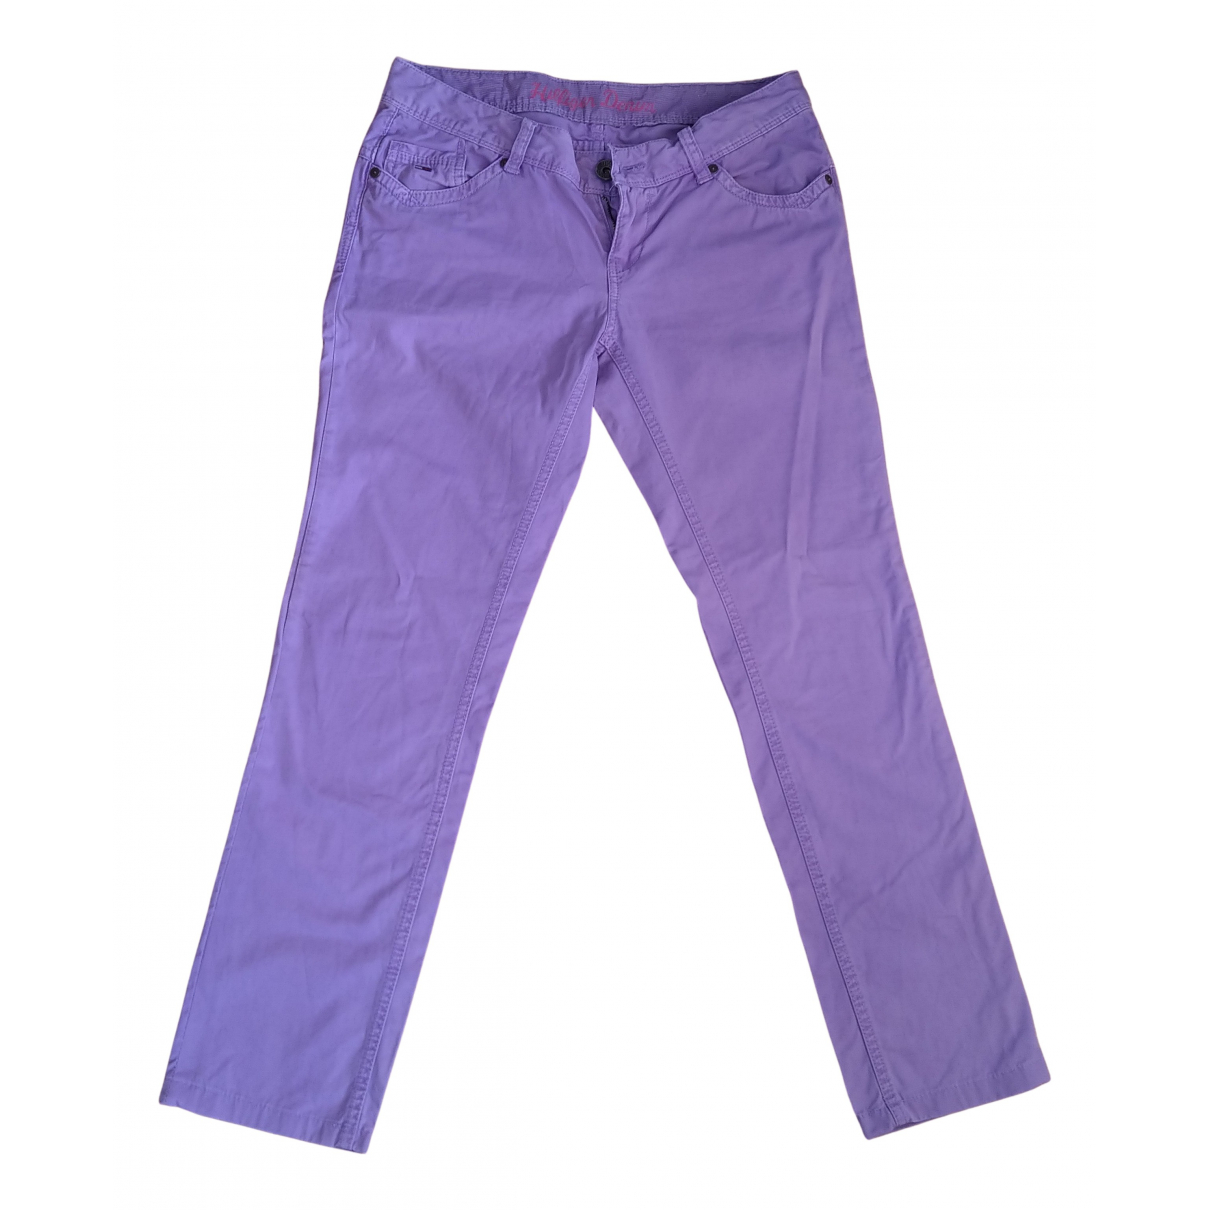 Tommy Hilfiger N Purple Cotton Jeans for Women 27 US